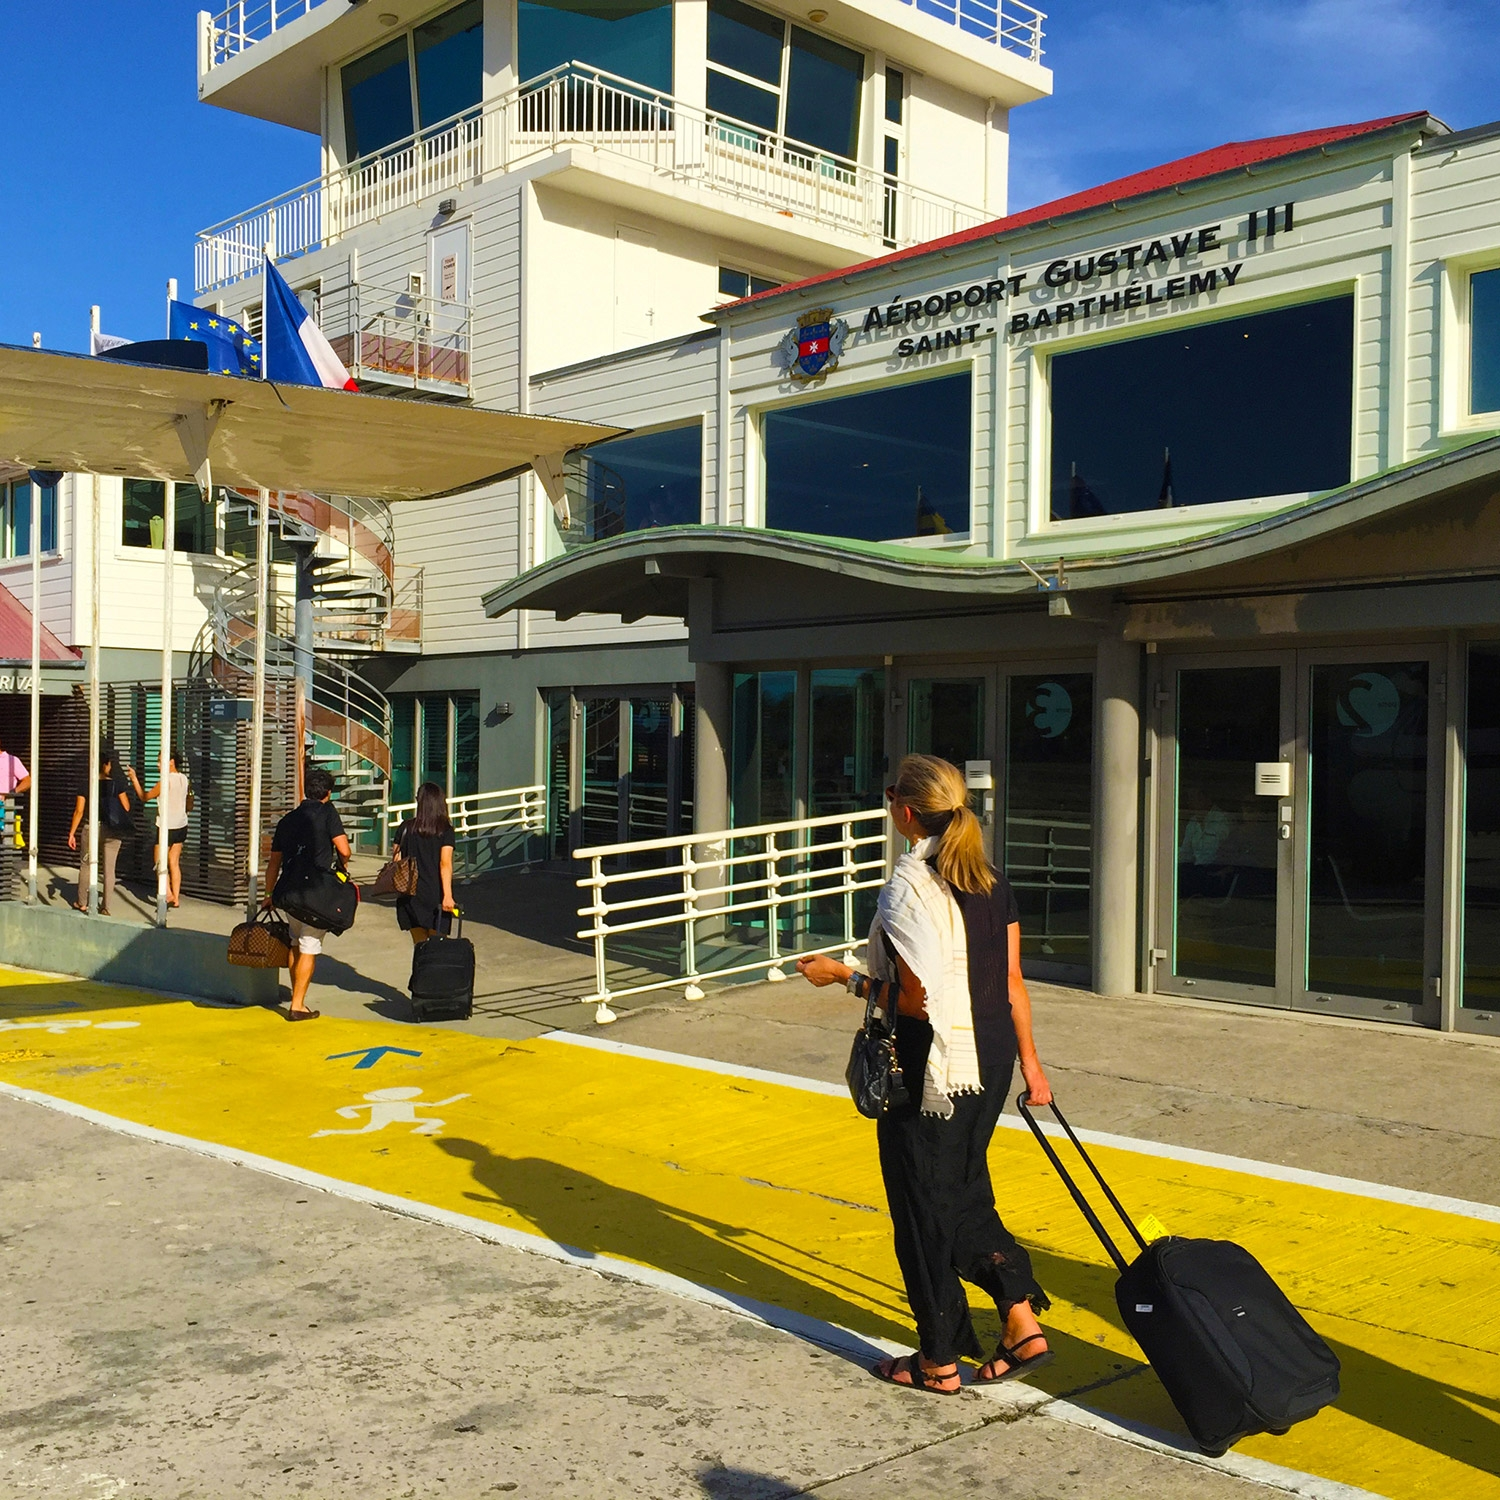 The simple timber exterior of the St Barthelemy airport